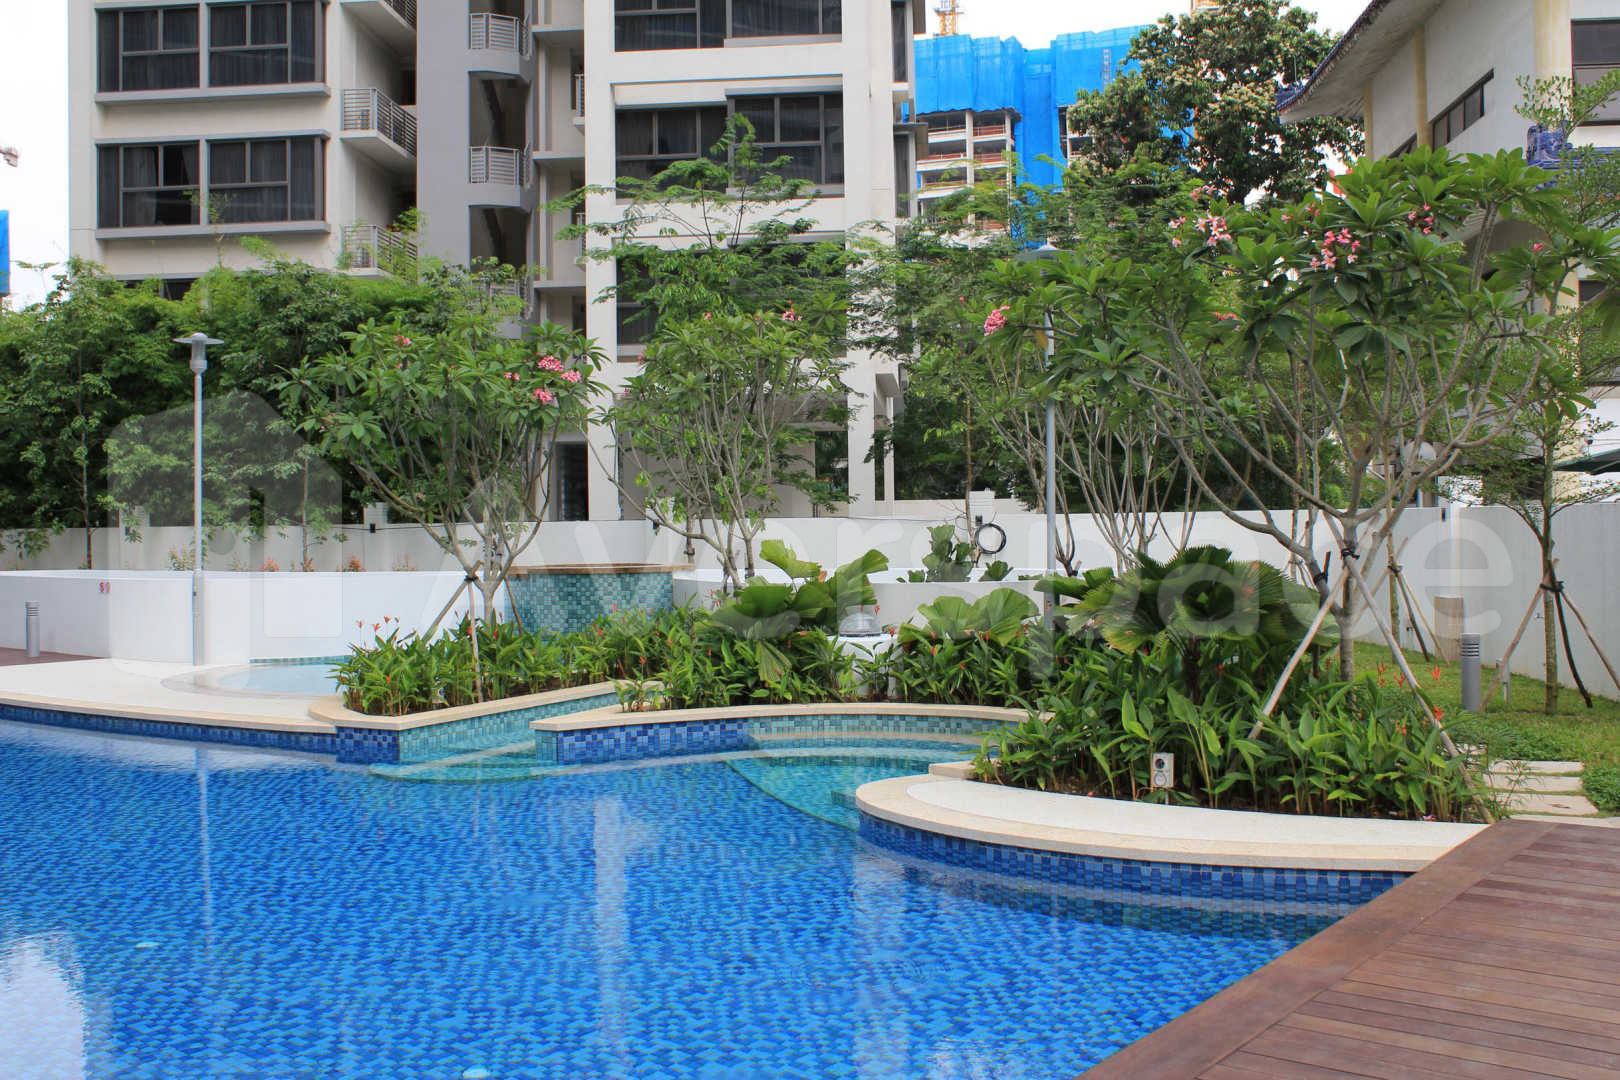 50 Amber Road, District 15 Singapore